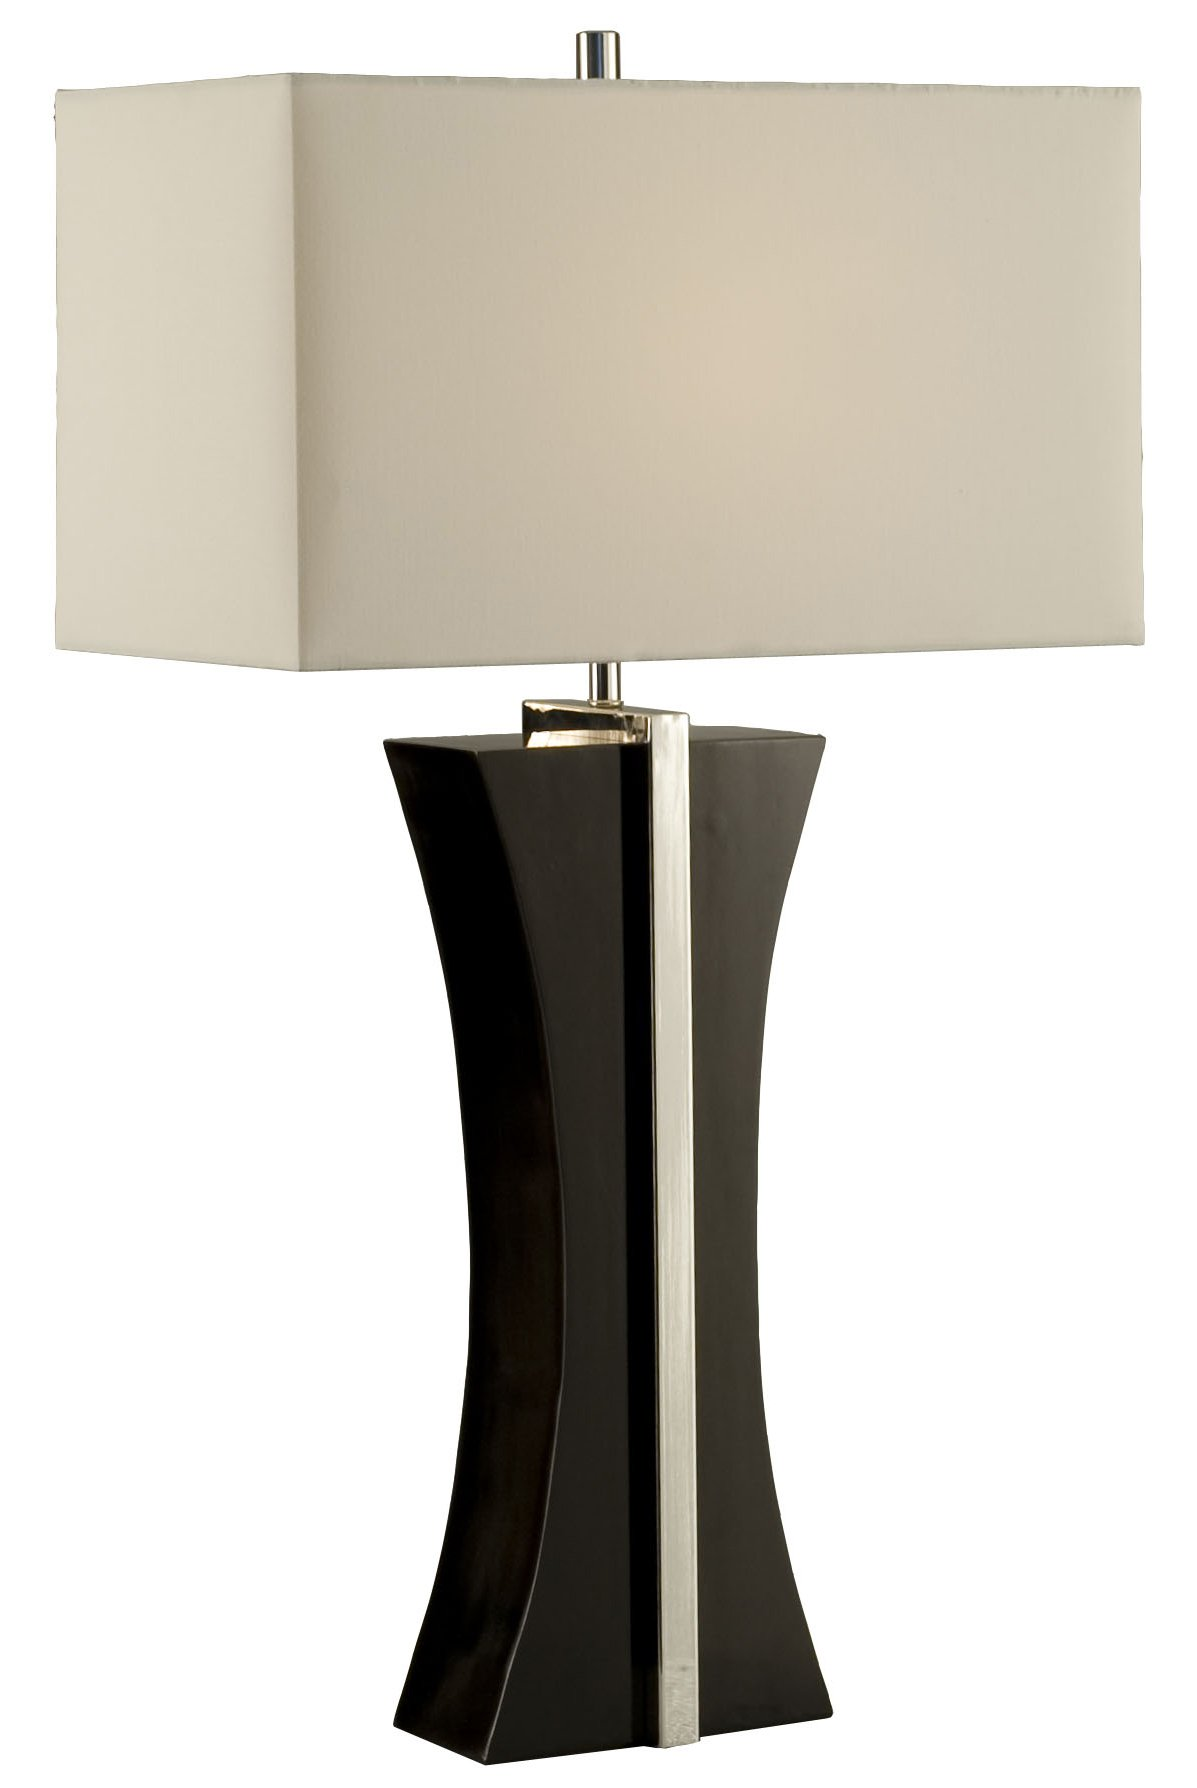 Modern Contemporary Table Lamps Of Nova Lighting 1010046 Ridgeway Modern Contemporary Table